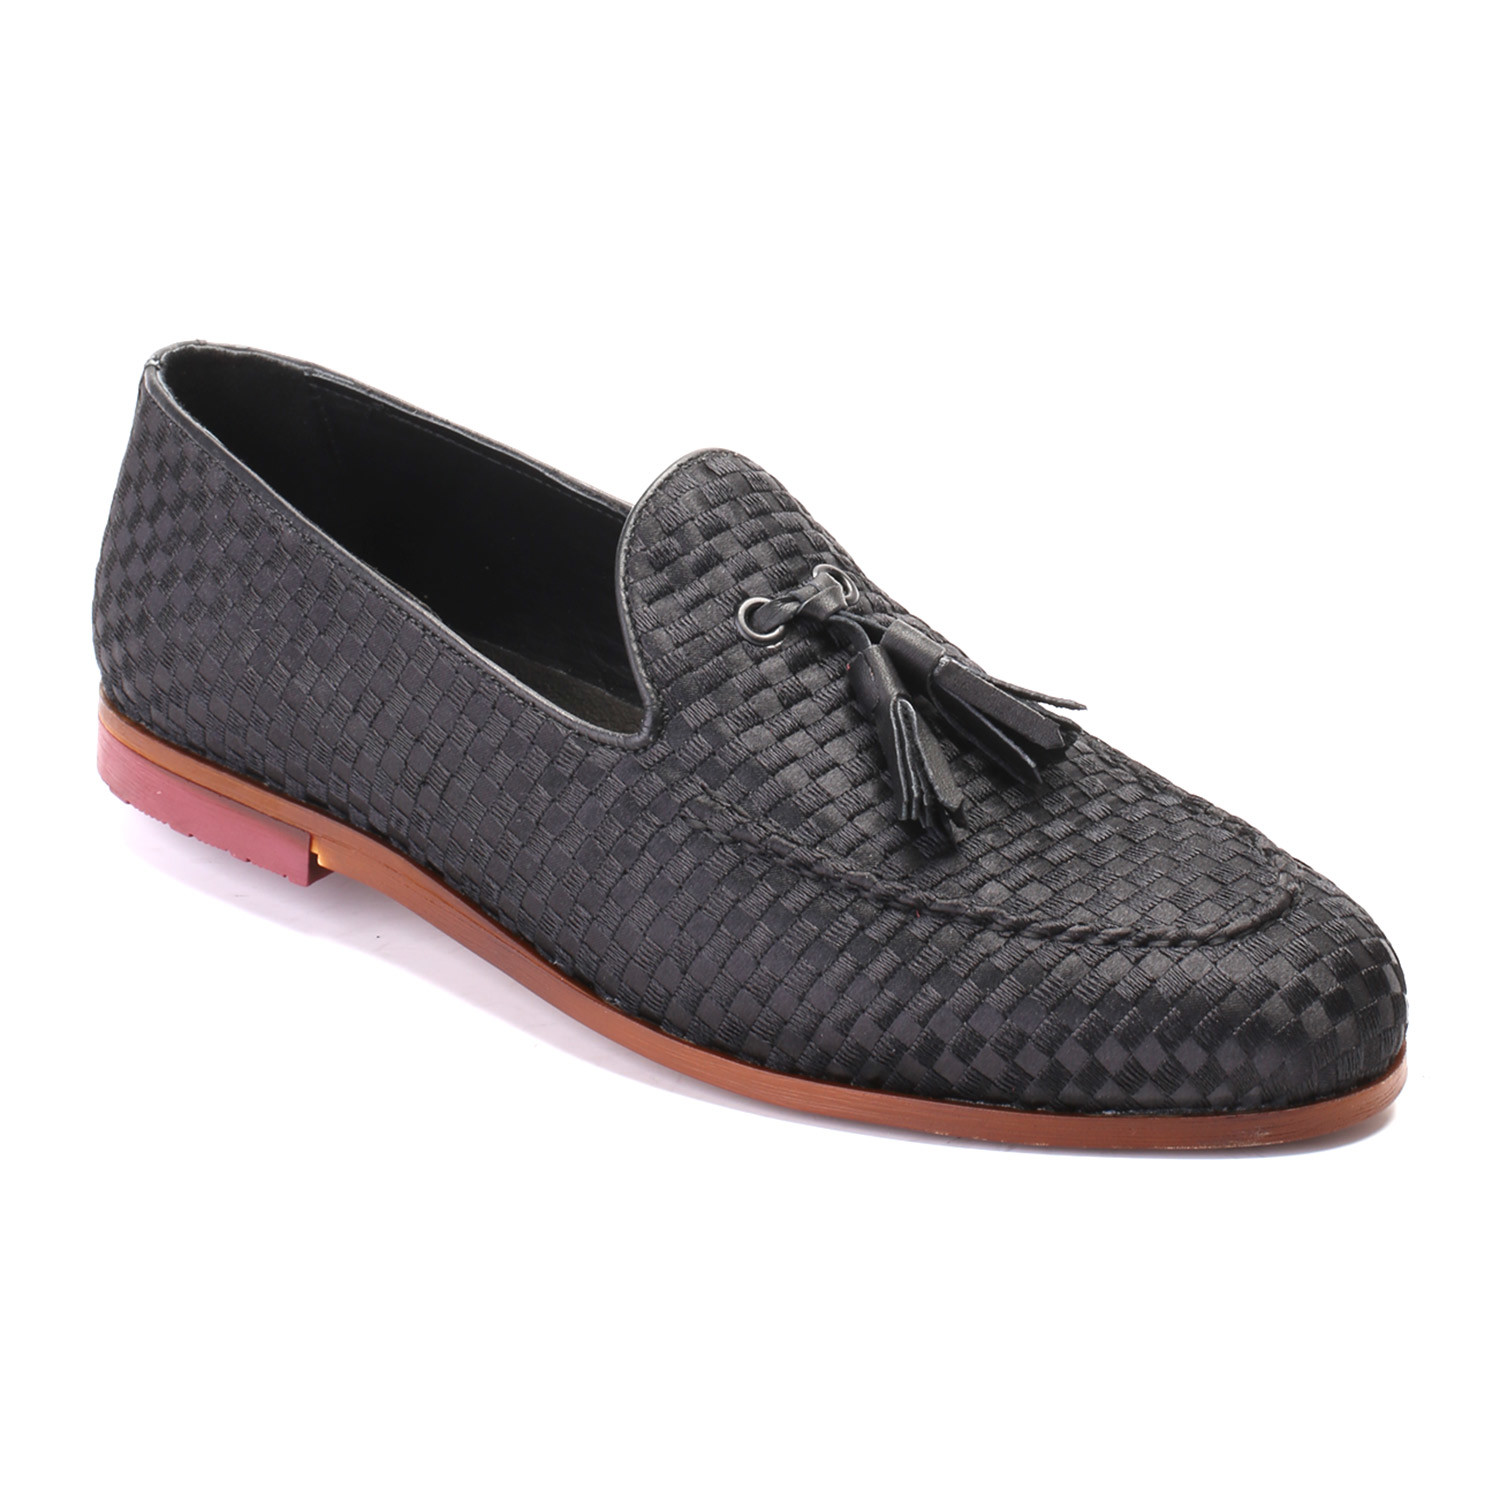 d4c2e88c535 Woven Tassel Loafer    Black (Euro  40) - Eskina - Touch of Modern